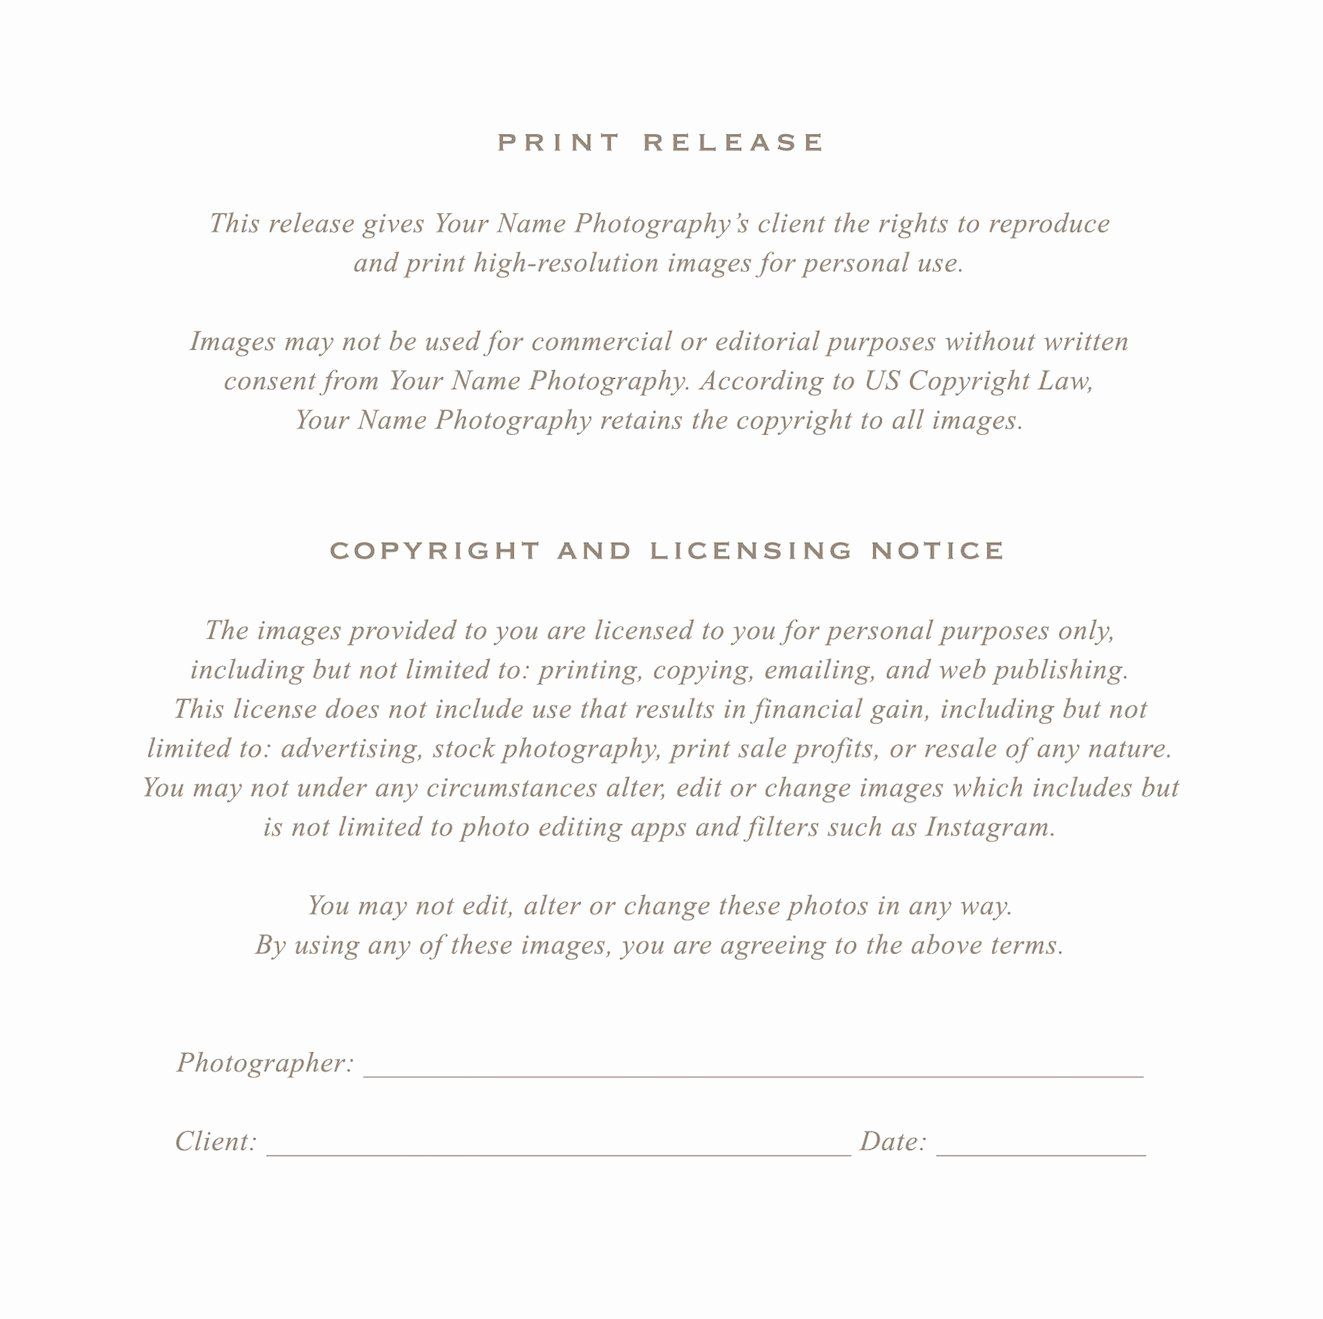 Client Print Release Form Template New Grapher Print Release Form By Photography Contract Photography Business Print Release